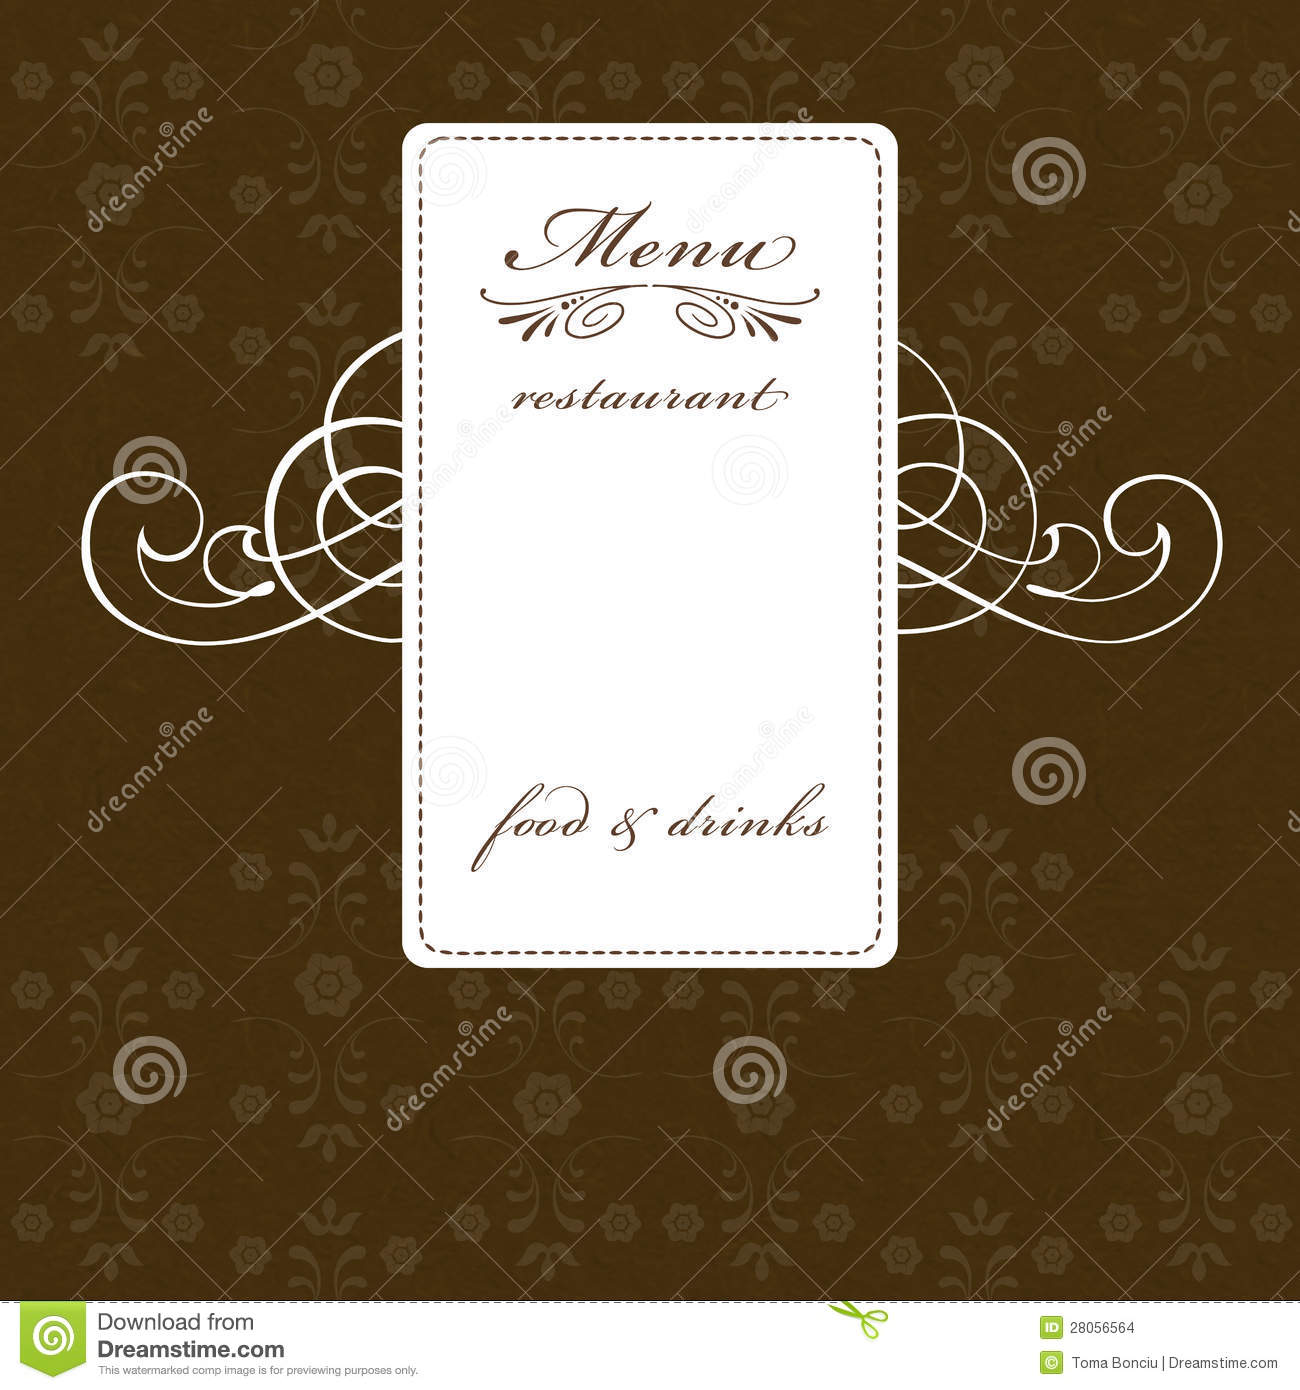 Elegant Restaurant Menu Design Stock Images Image 28056564